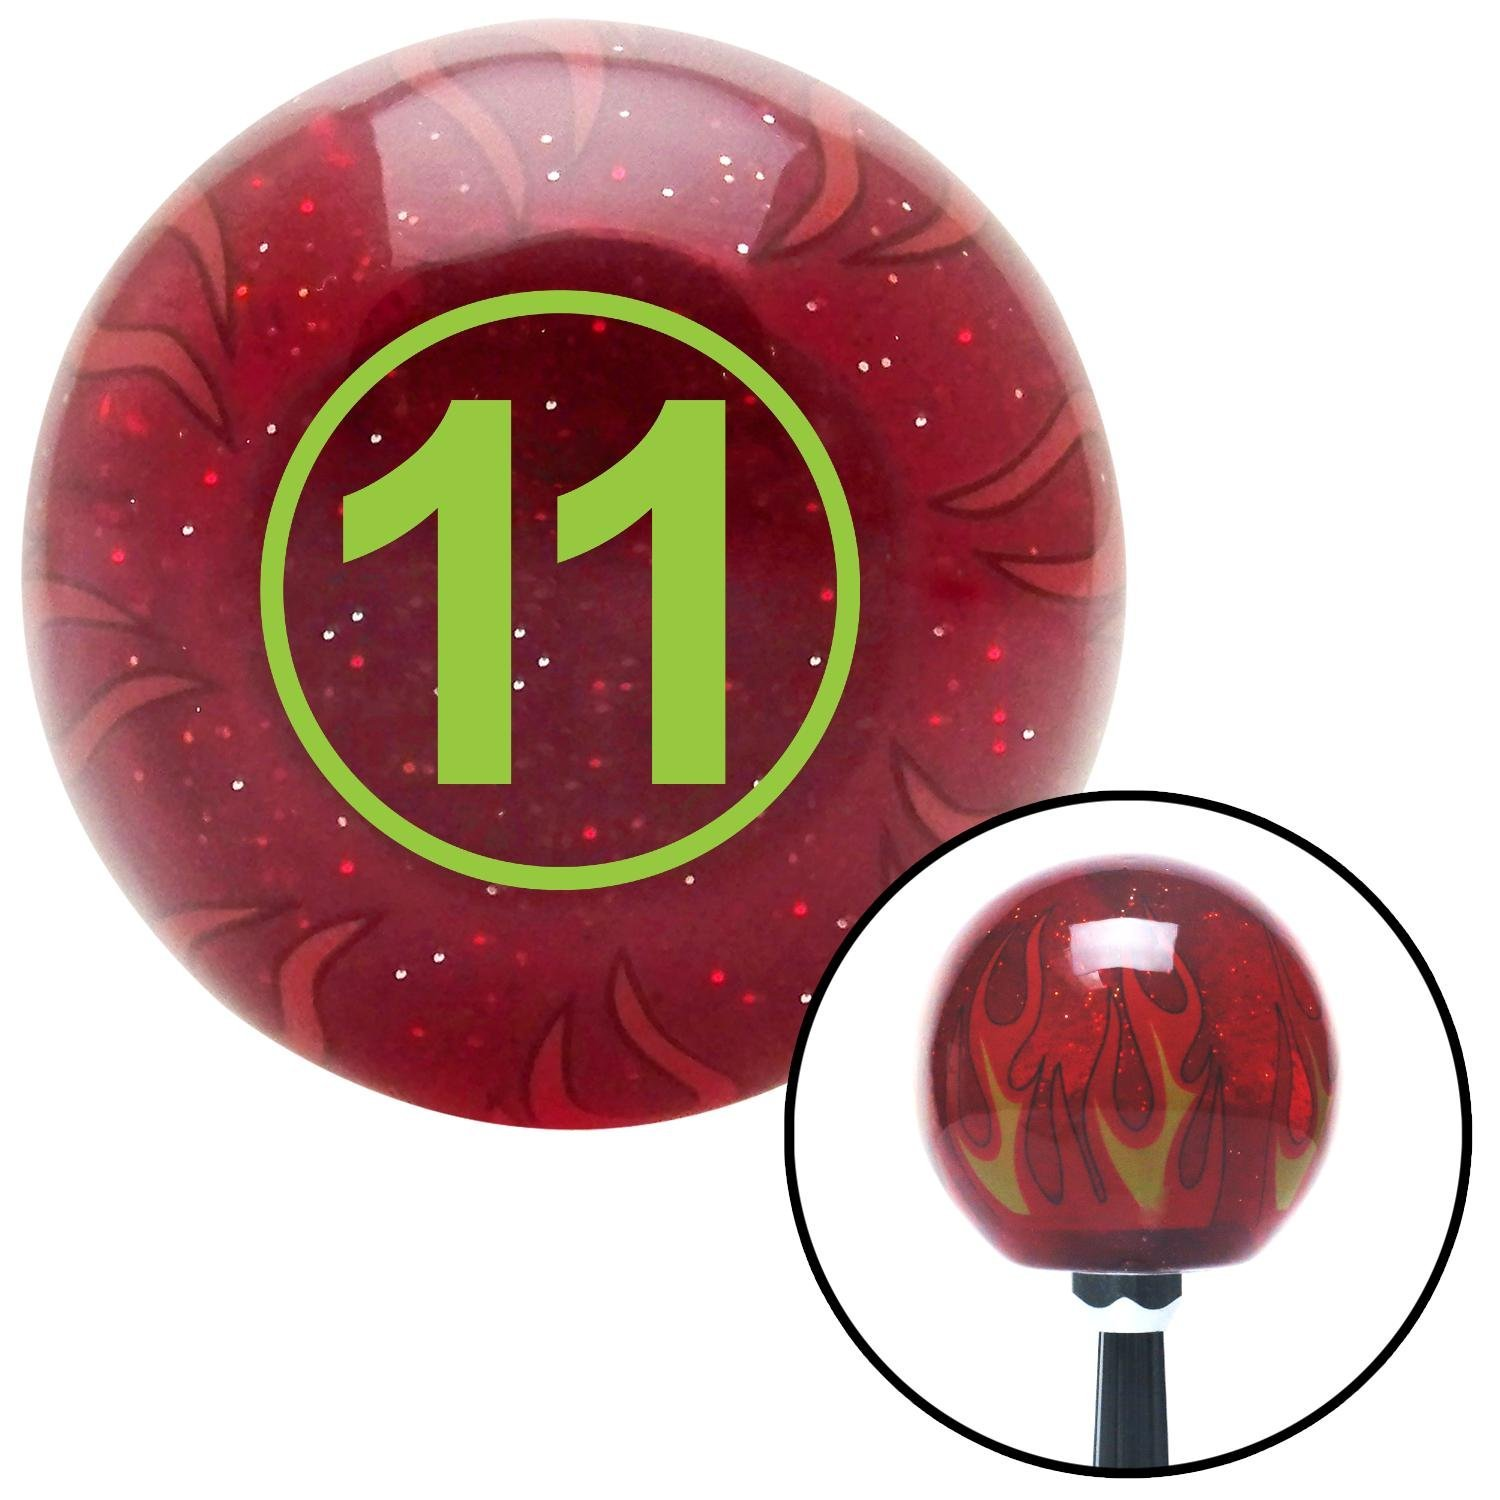 Green Ball #11 American Shifter 236317 Red Flame Metal Flake Shift Knob with M16 x 1.5 Insert